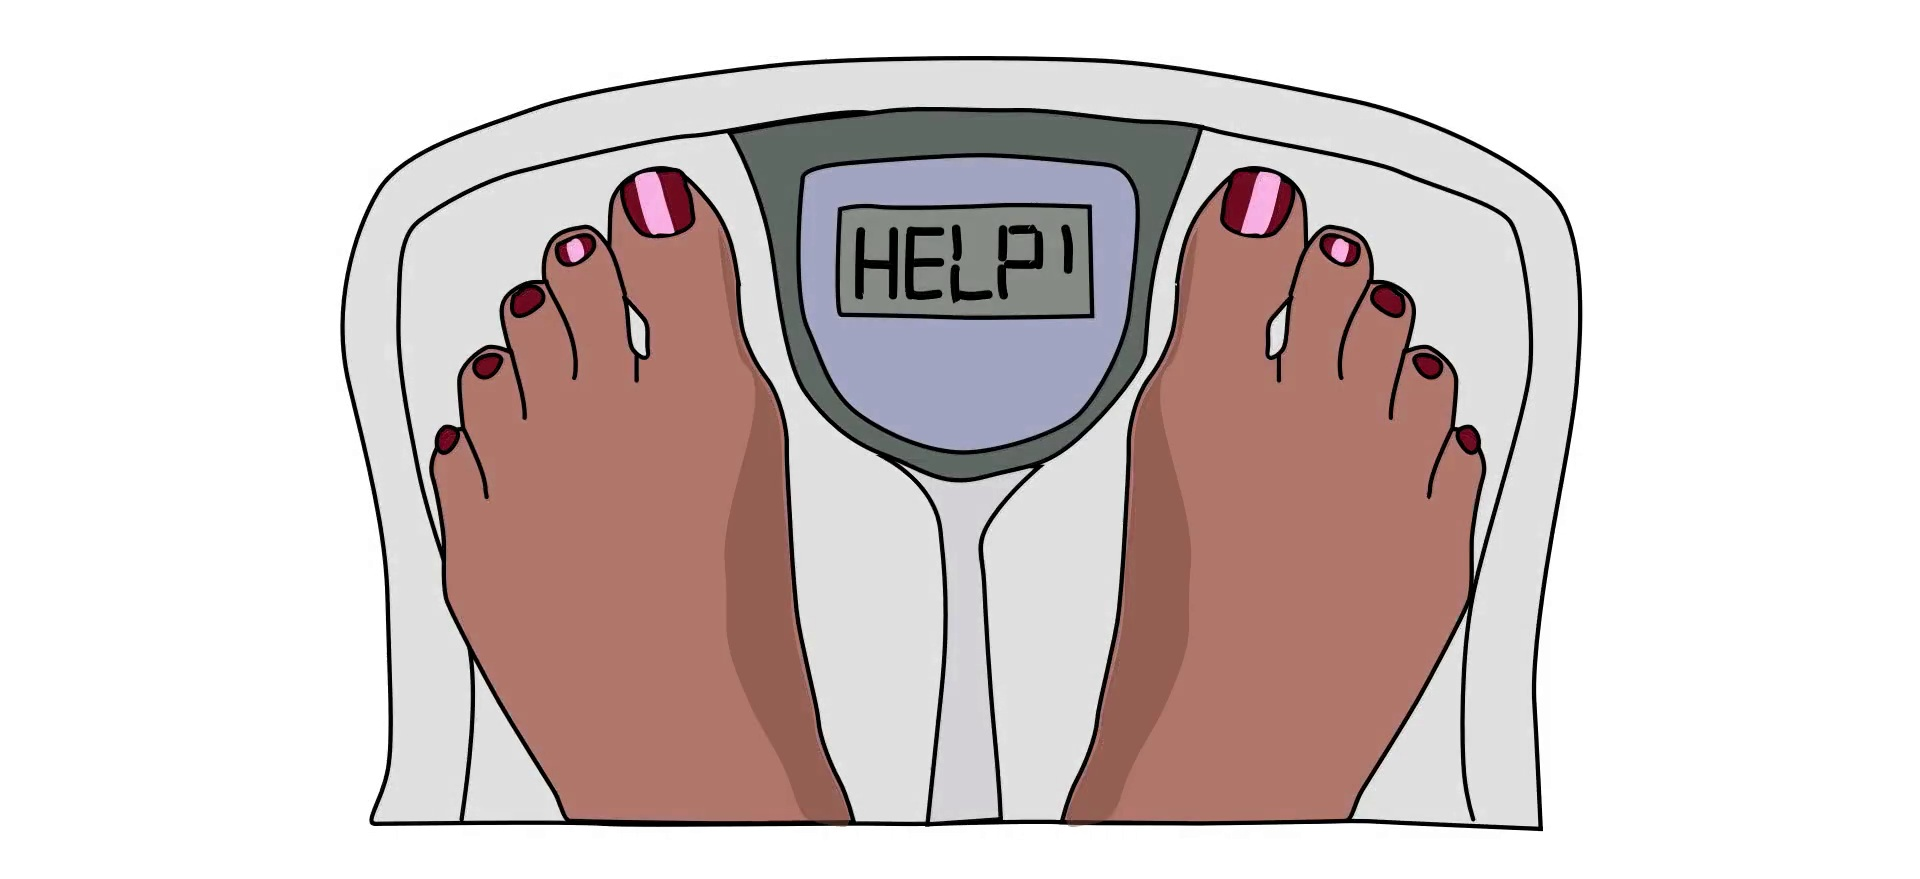 videoblocks-animated-drawing-of-out-of-control-weight-loss-feet-on-scale-spelling-help_bd3ho3xysq_thumbnail-full08.jpg